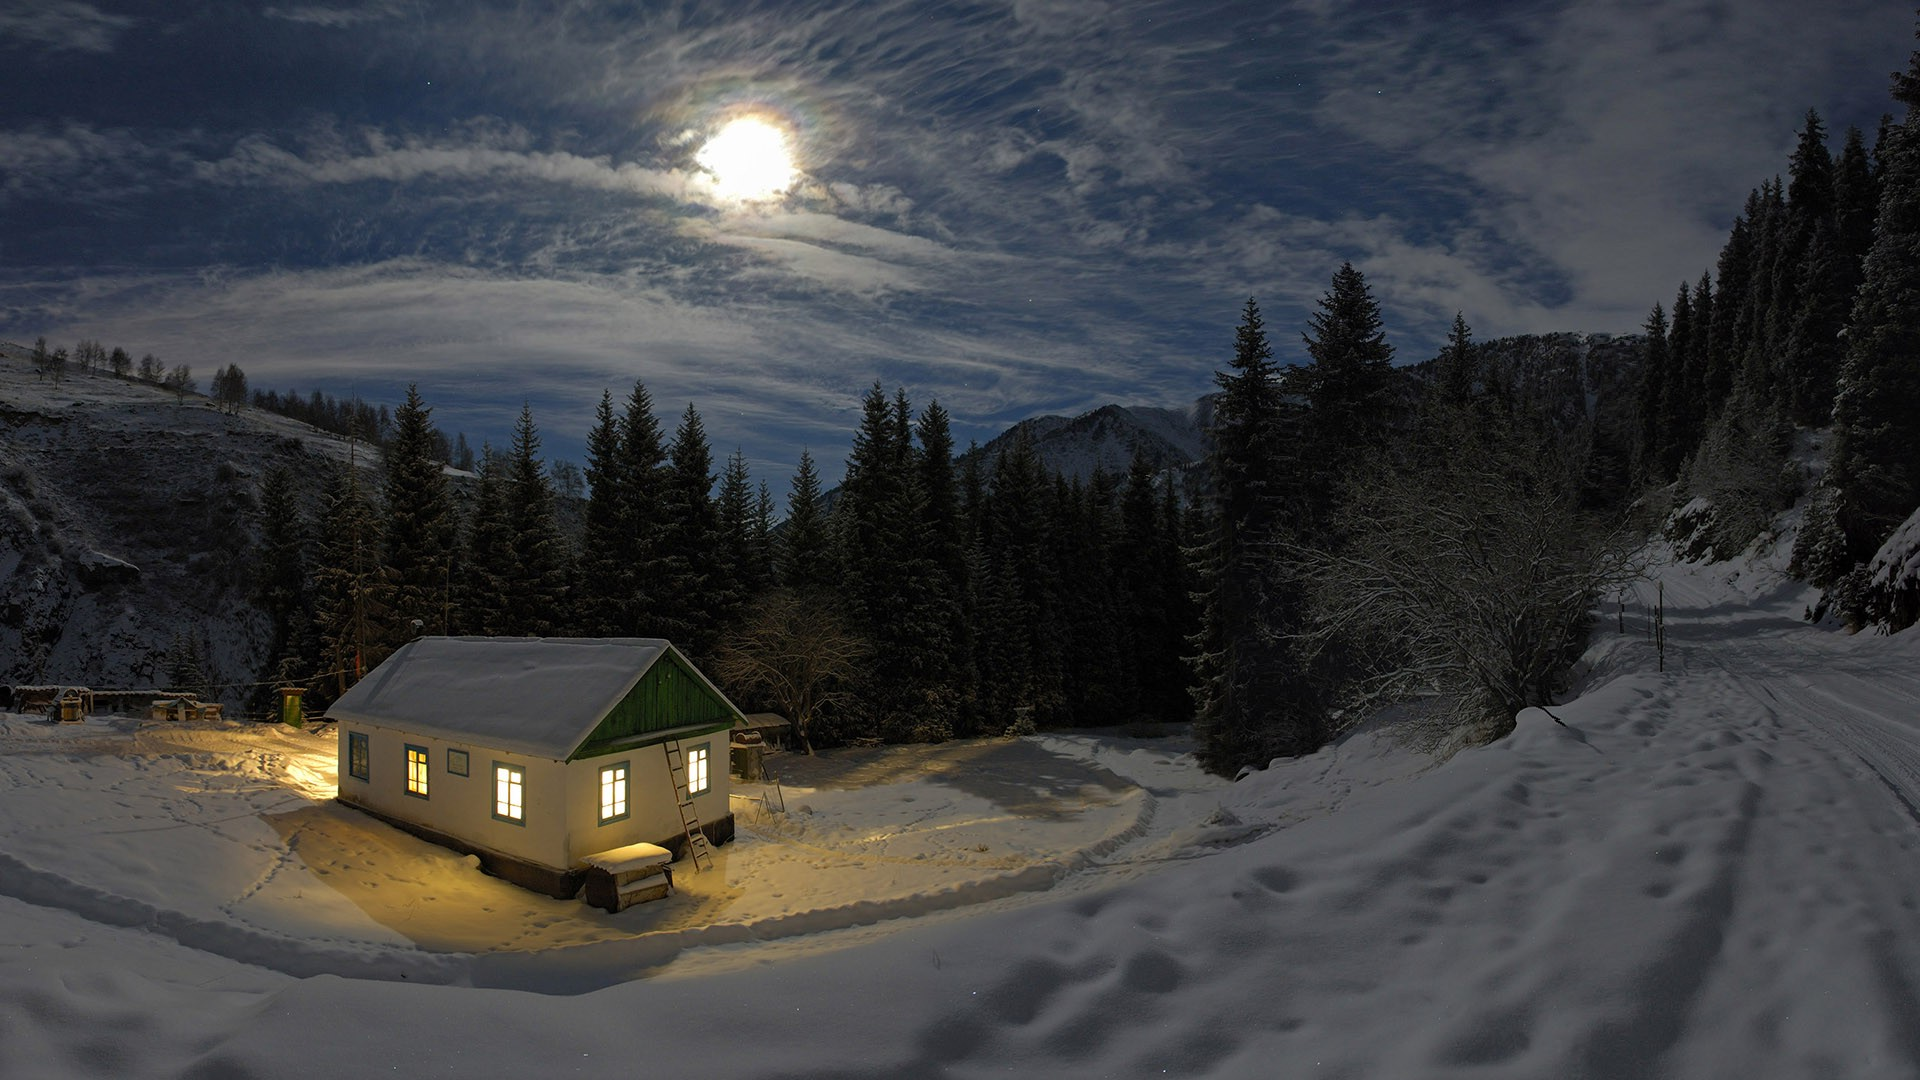 3d Snowy Cottage Animated Wallpaper Free Download Wallpaper 1920x1080 Px Clouds Forest House Landscape